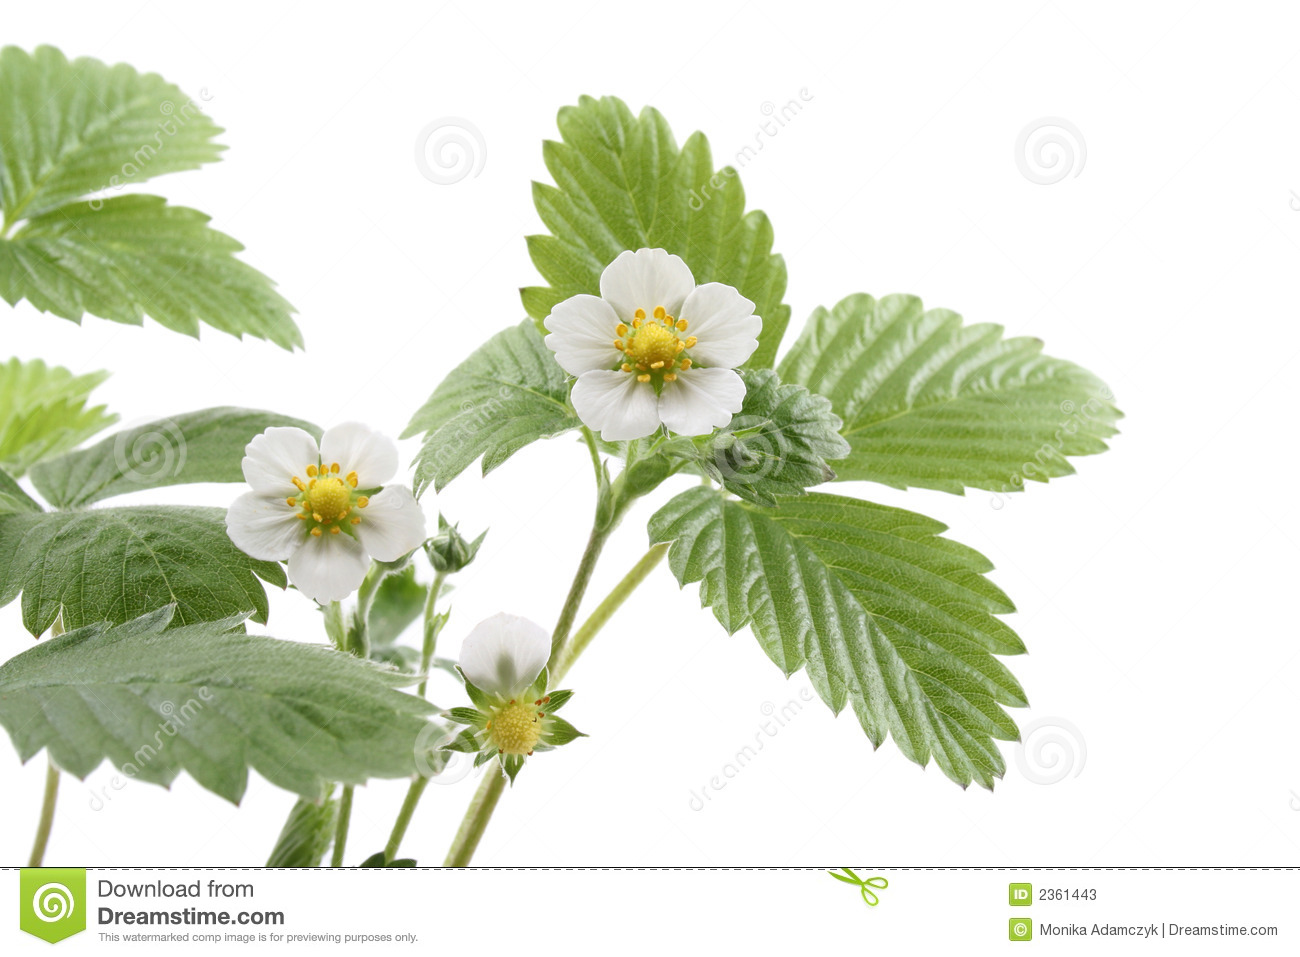 Strawberry plant stock image image of flower plants 2361443 - Flowers planted may complete garden ...